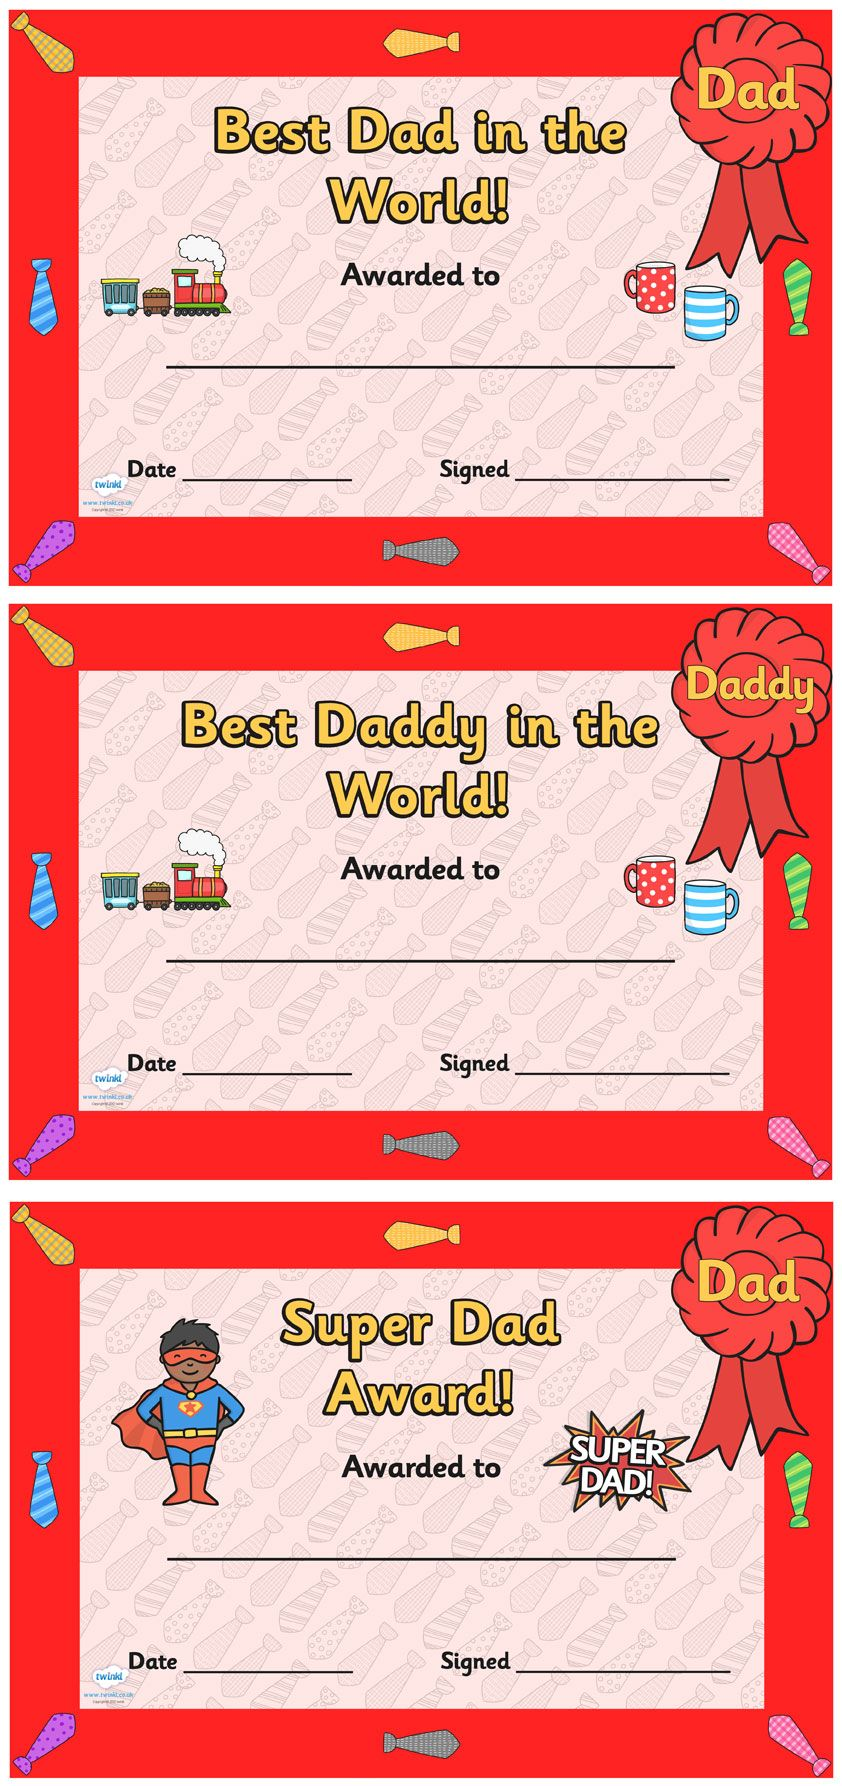 Father's Day Certificates Pop over to our site at www